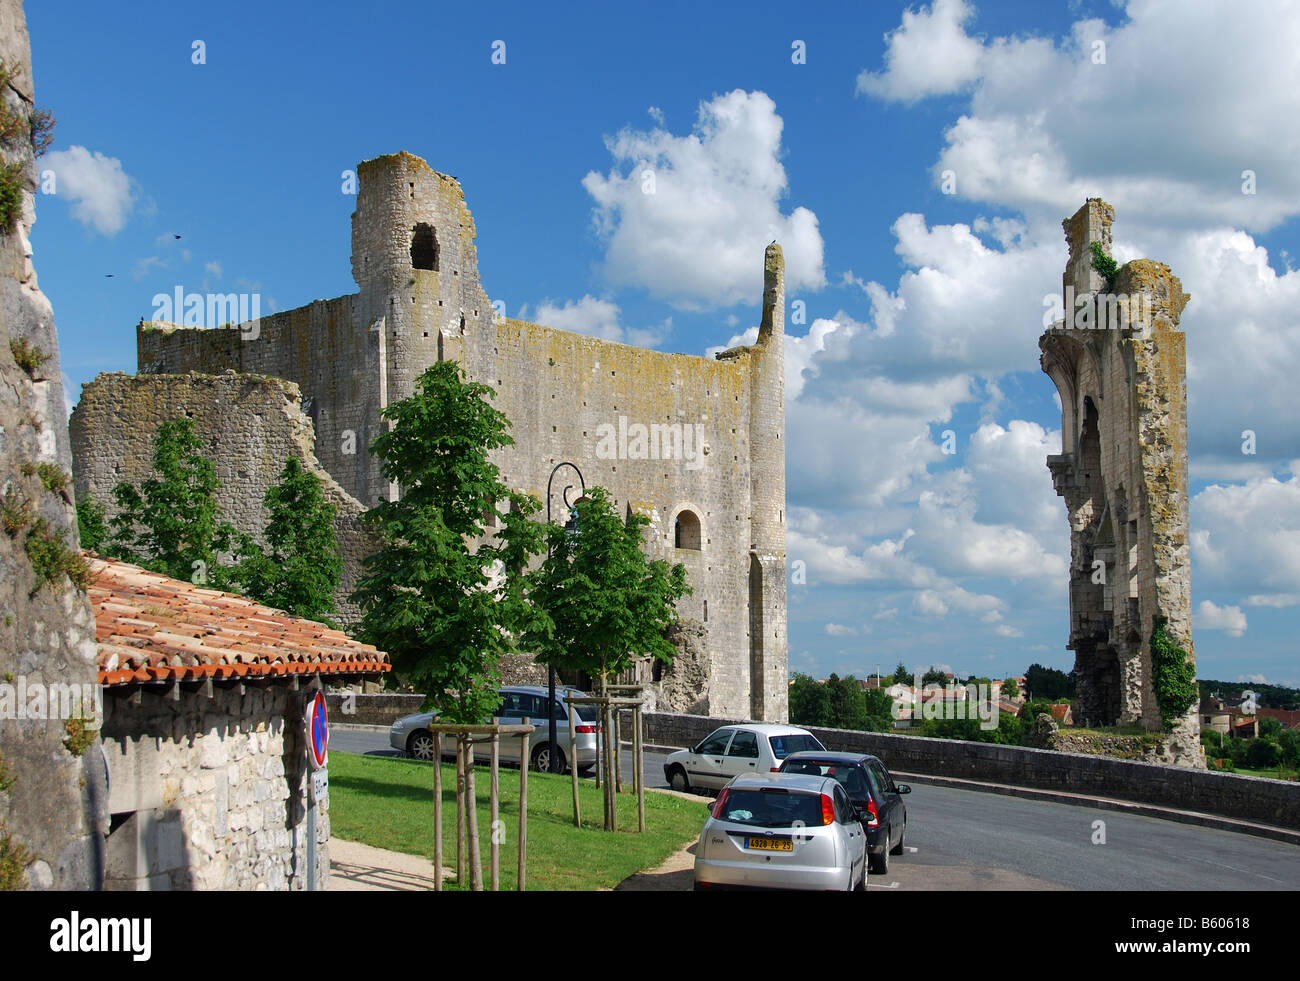 Medieval fortifications, Chauvigny, France - Stock Image